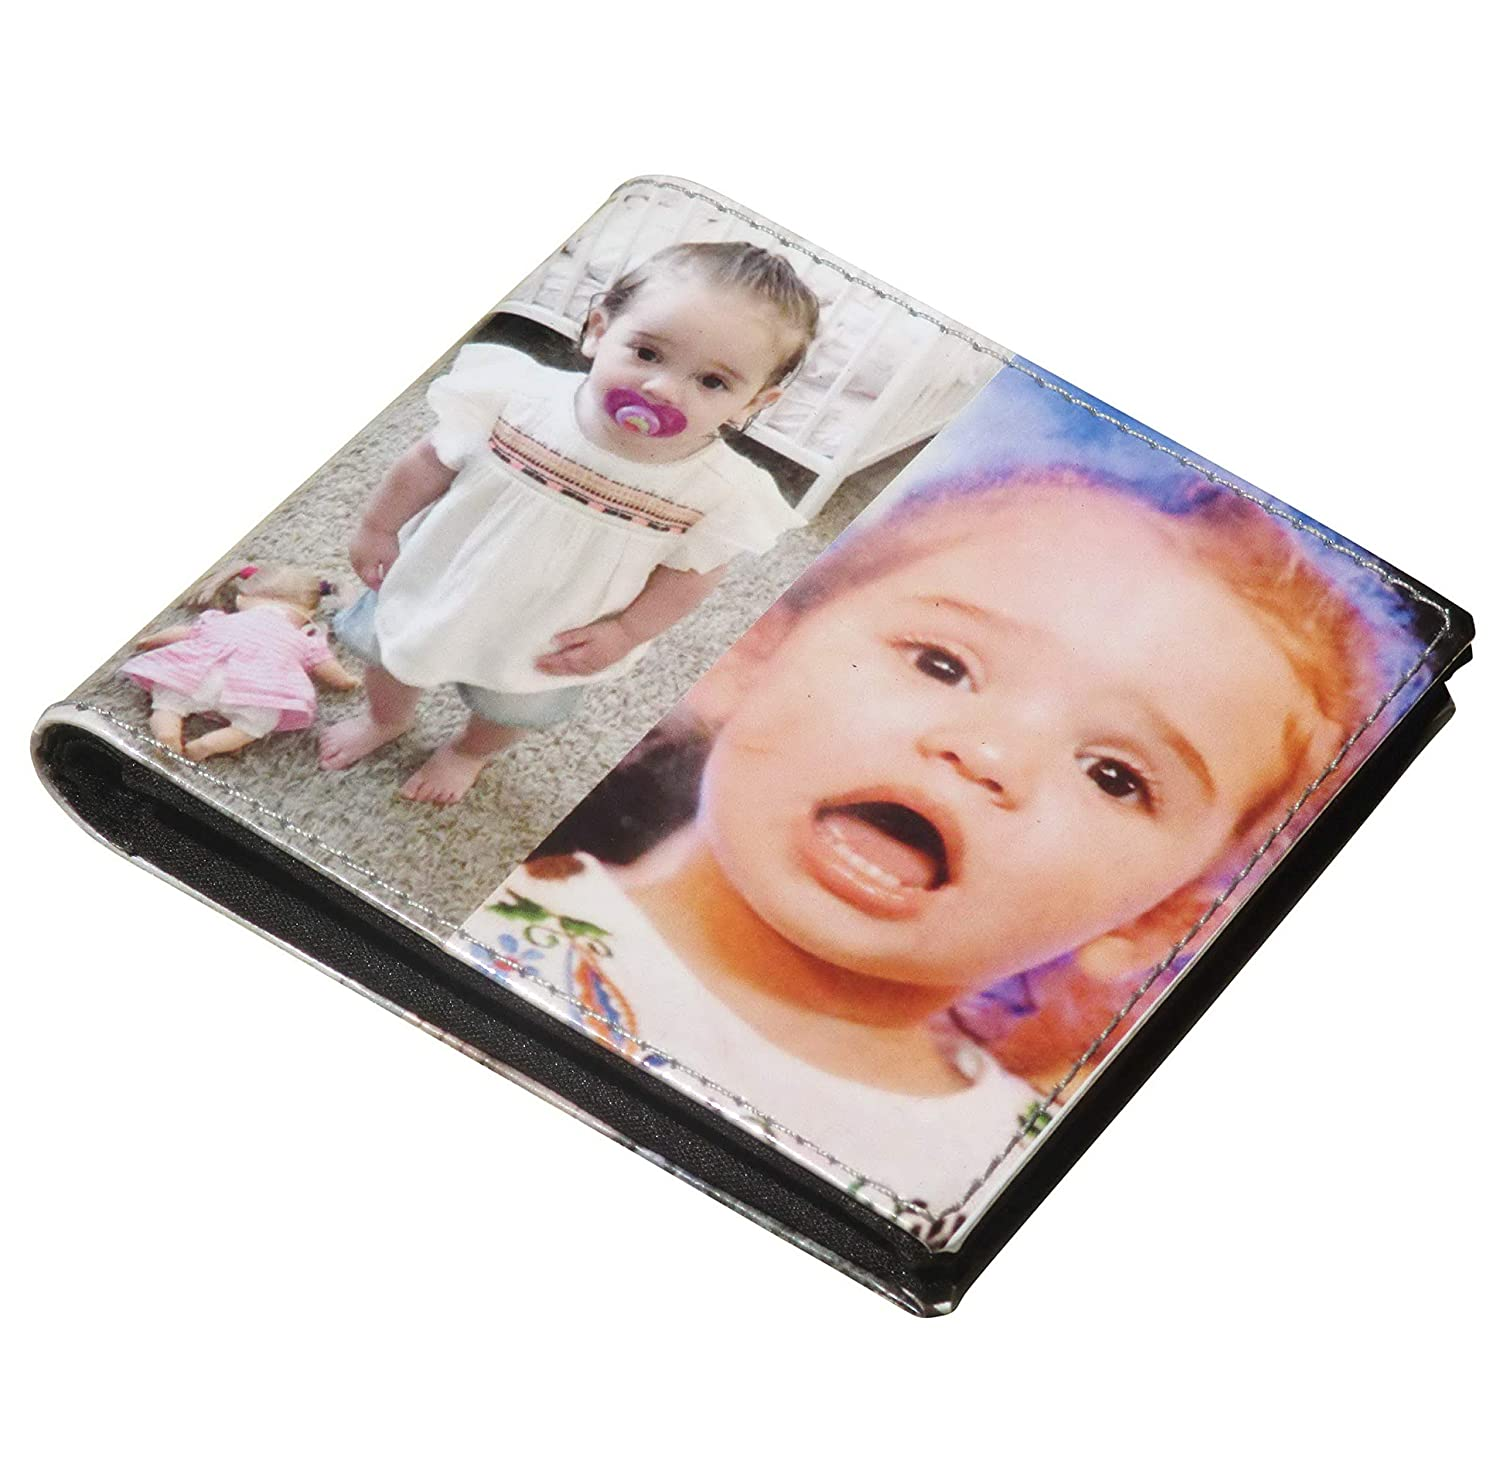 9f0fa5cf0d28 Medium custom wallet for men using pictures from you - images of me my  family picture vegan gift for dad daddy brother father boyfriend  personalized ...